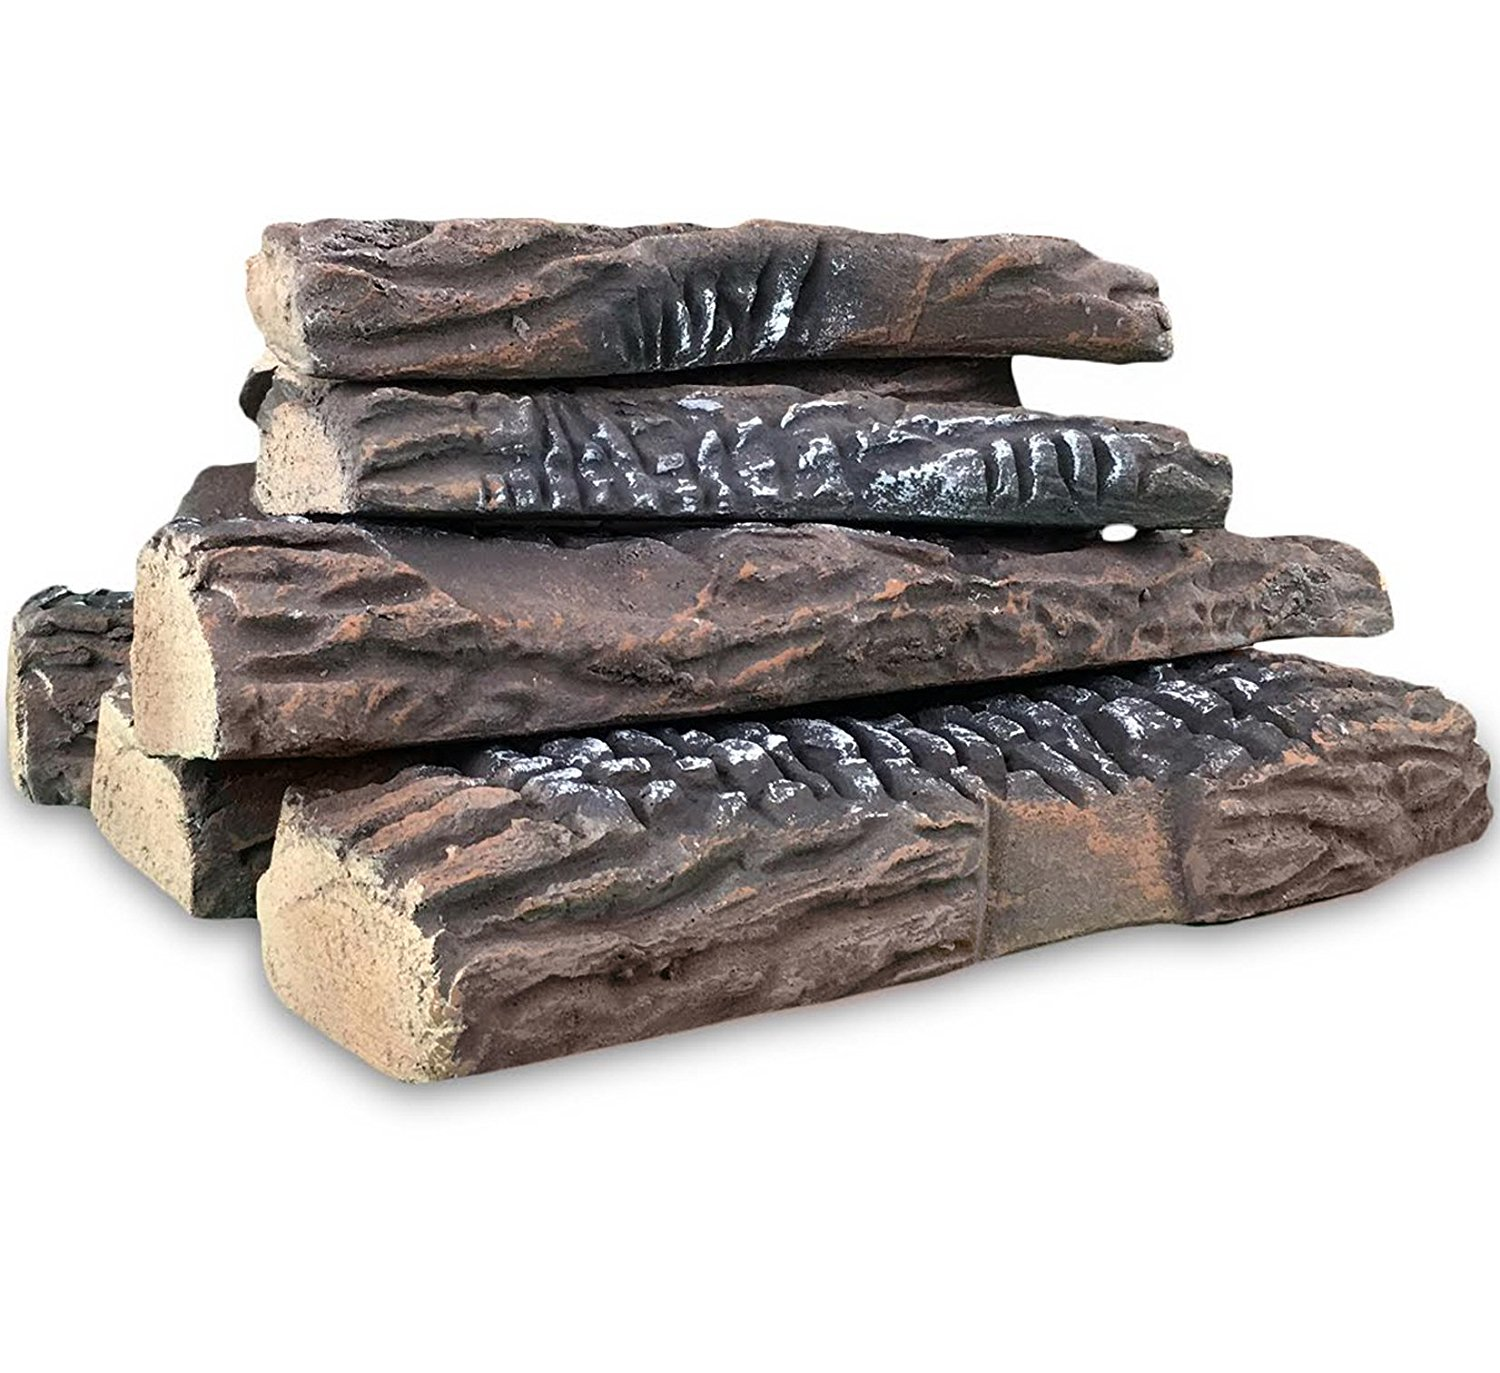 Regal Flame 5 Piece Set of Ceramic Wood Large Gas Fireplace Logs Logs for All Types of Indoor, Gas Inserts, Ventless & Vent Free